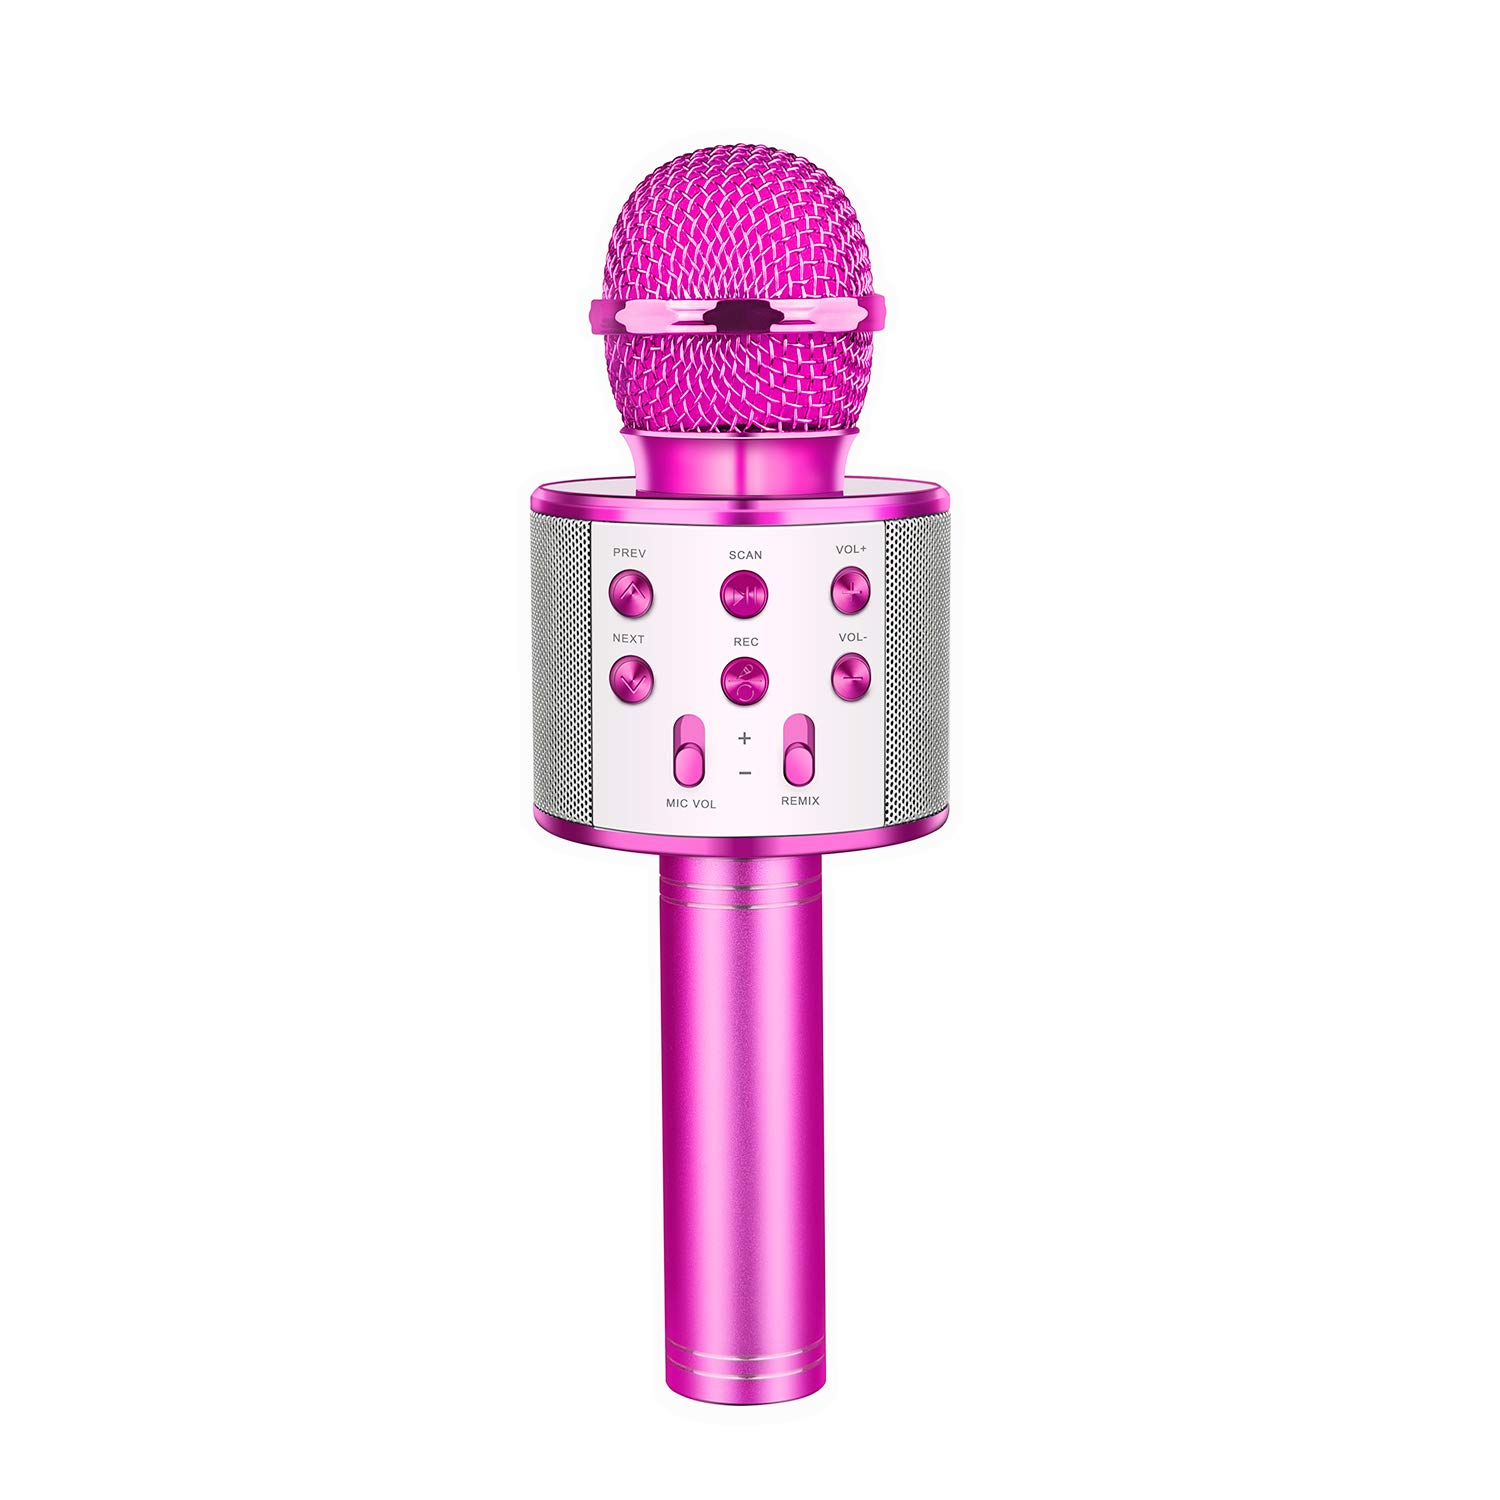 OPO Karaoke Microphone Wireless with Bluetooth, Portable Handheld Mic Speaker Home, Party Singing Compatible with iPhone/Android/PC (Purple)